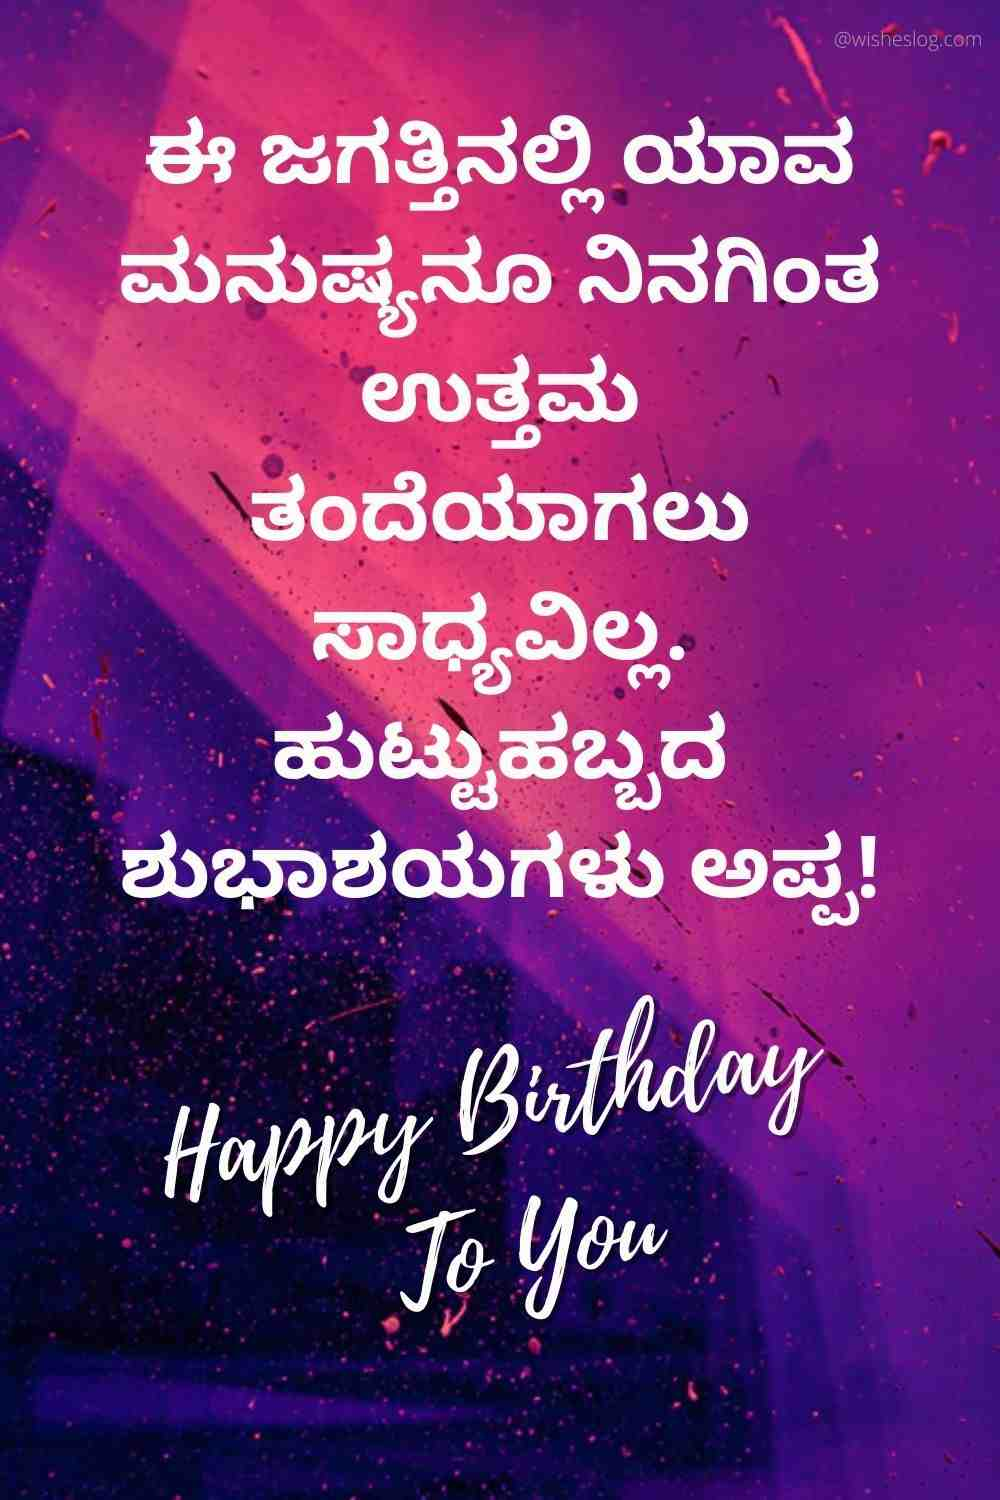 happy birthday images in kannada for father